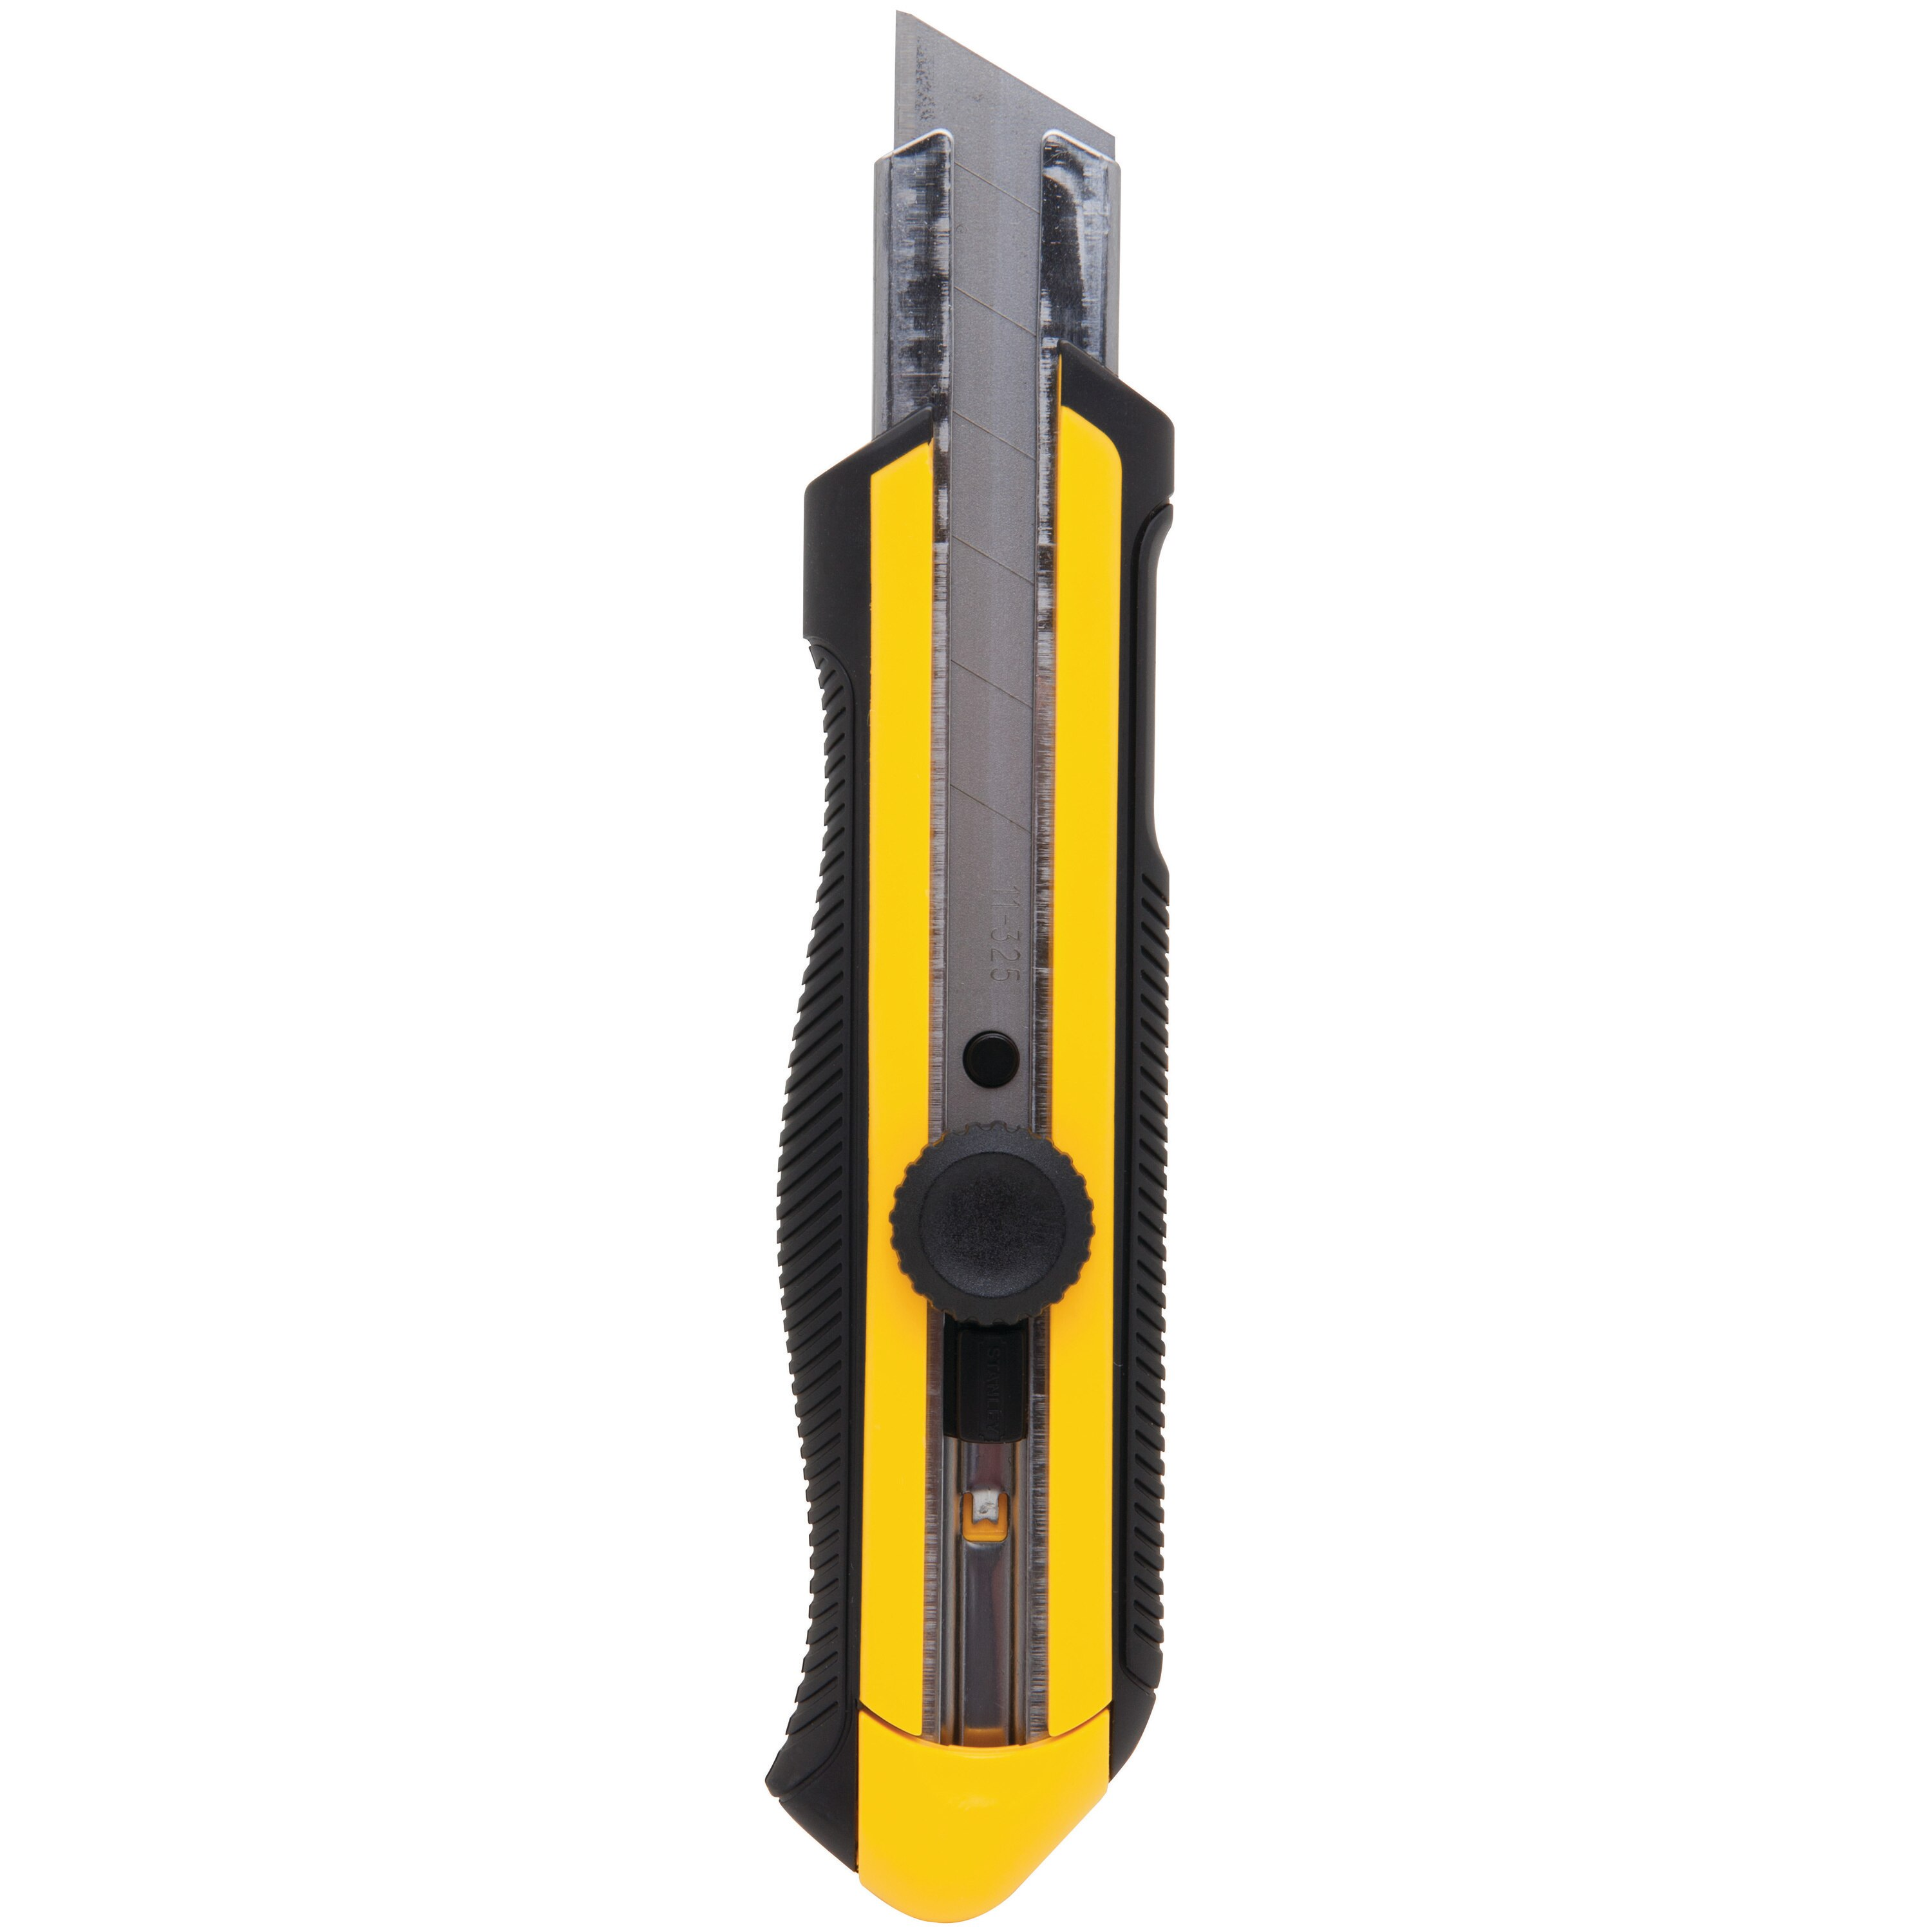 Stanley Tools - 25mm DynaGrip SnapOff Knife - 10-425